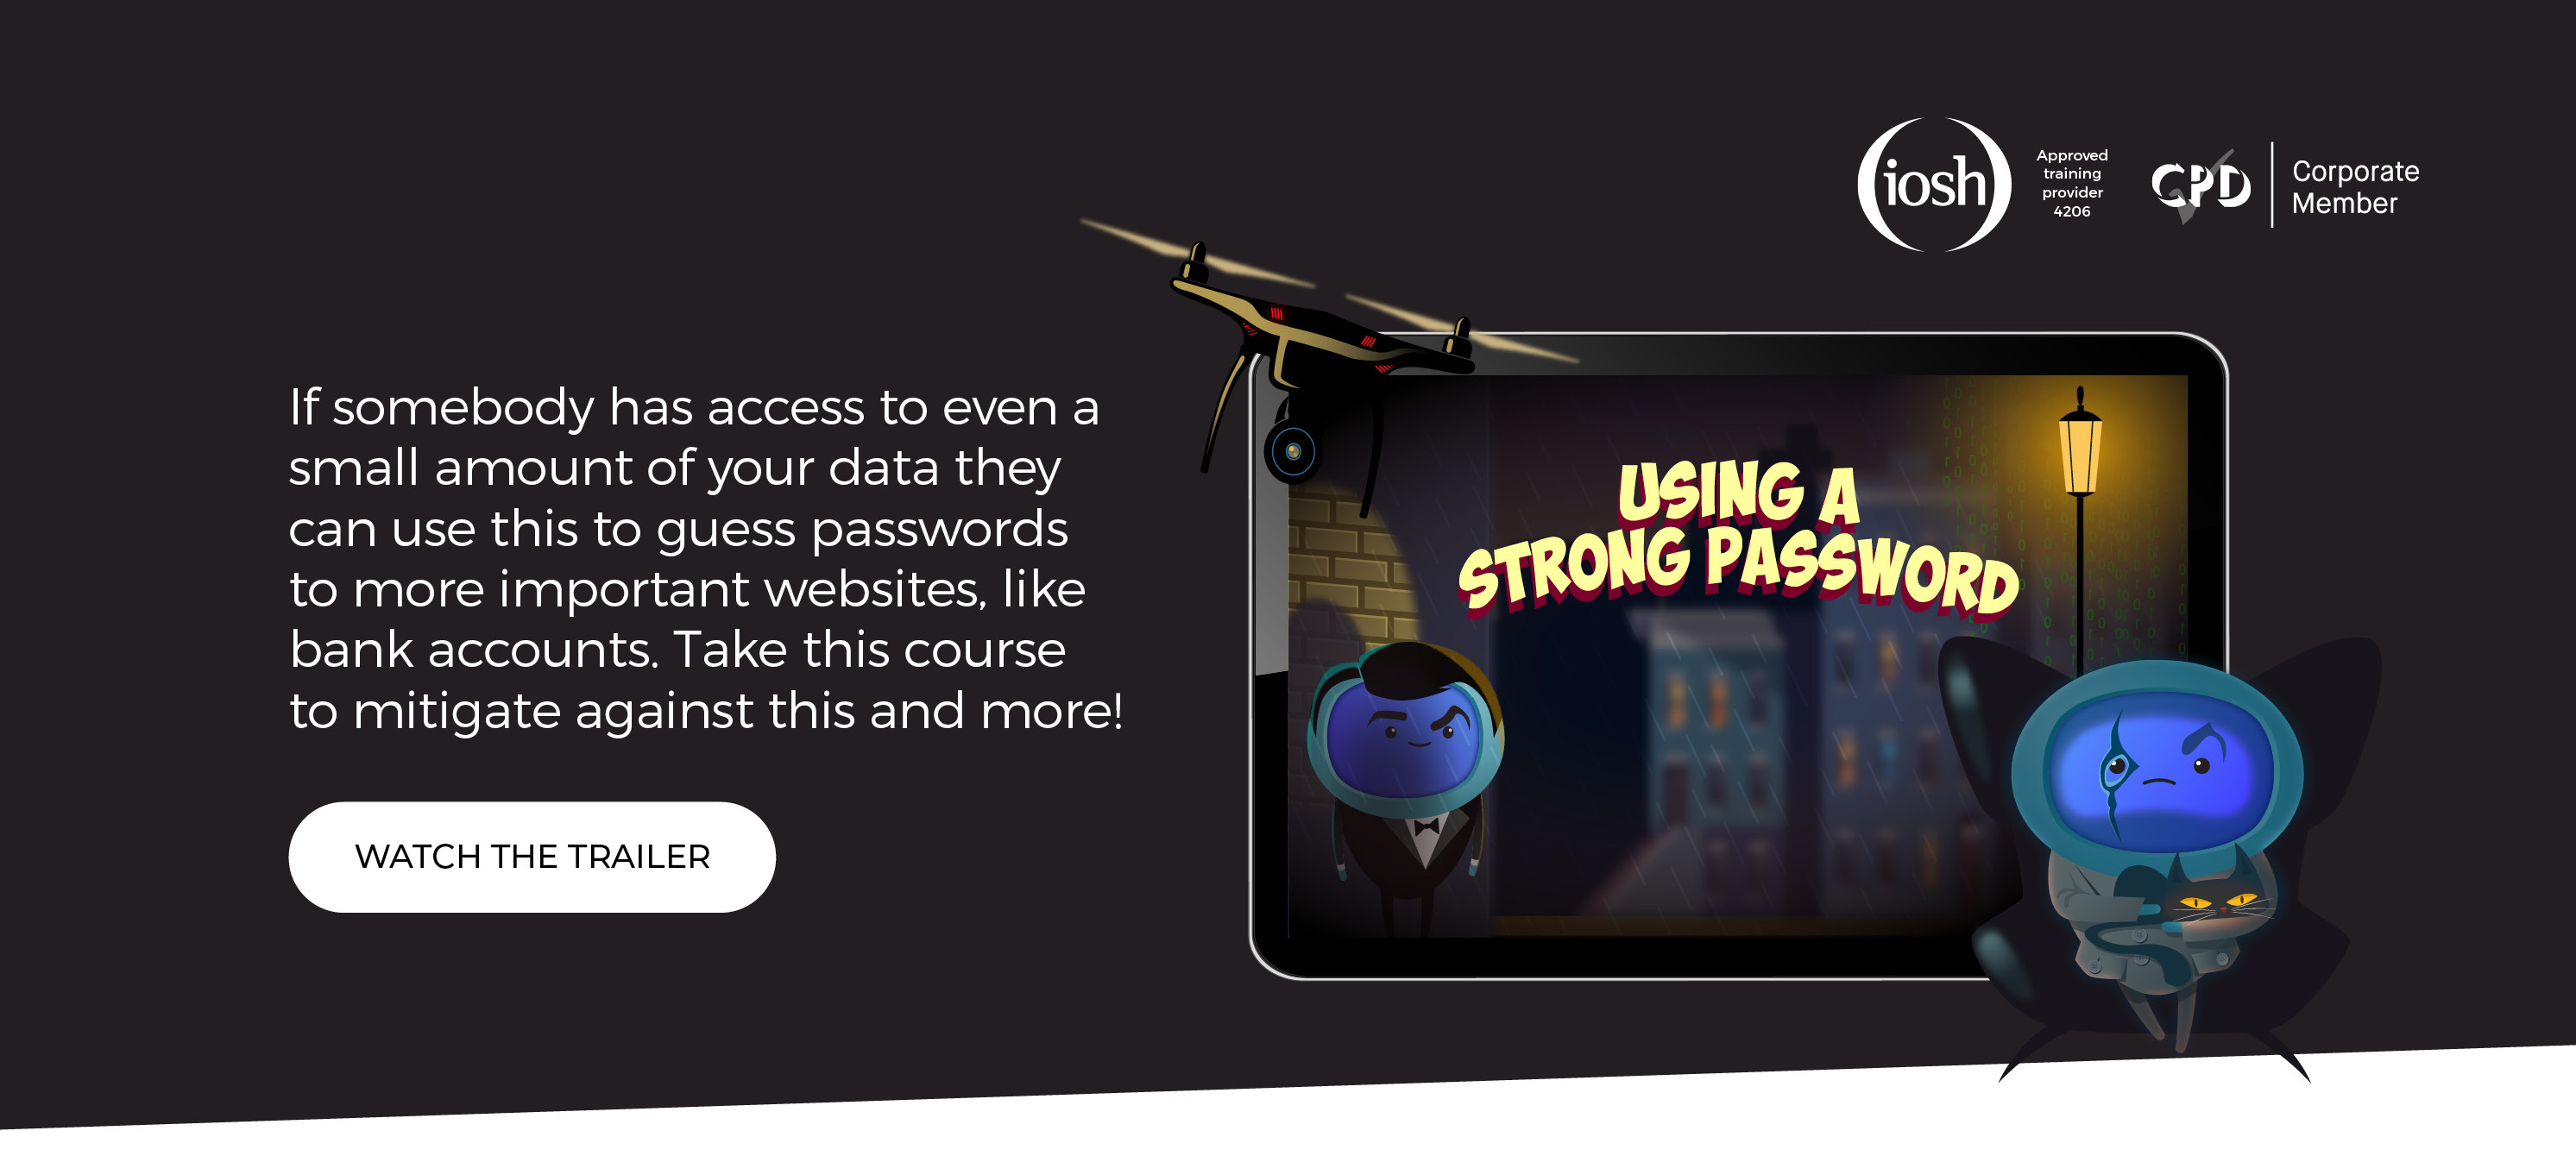 Using a Strong Password - Landing Page6